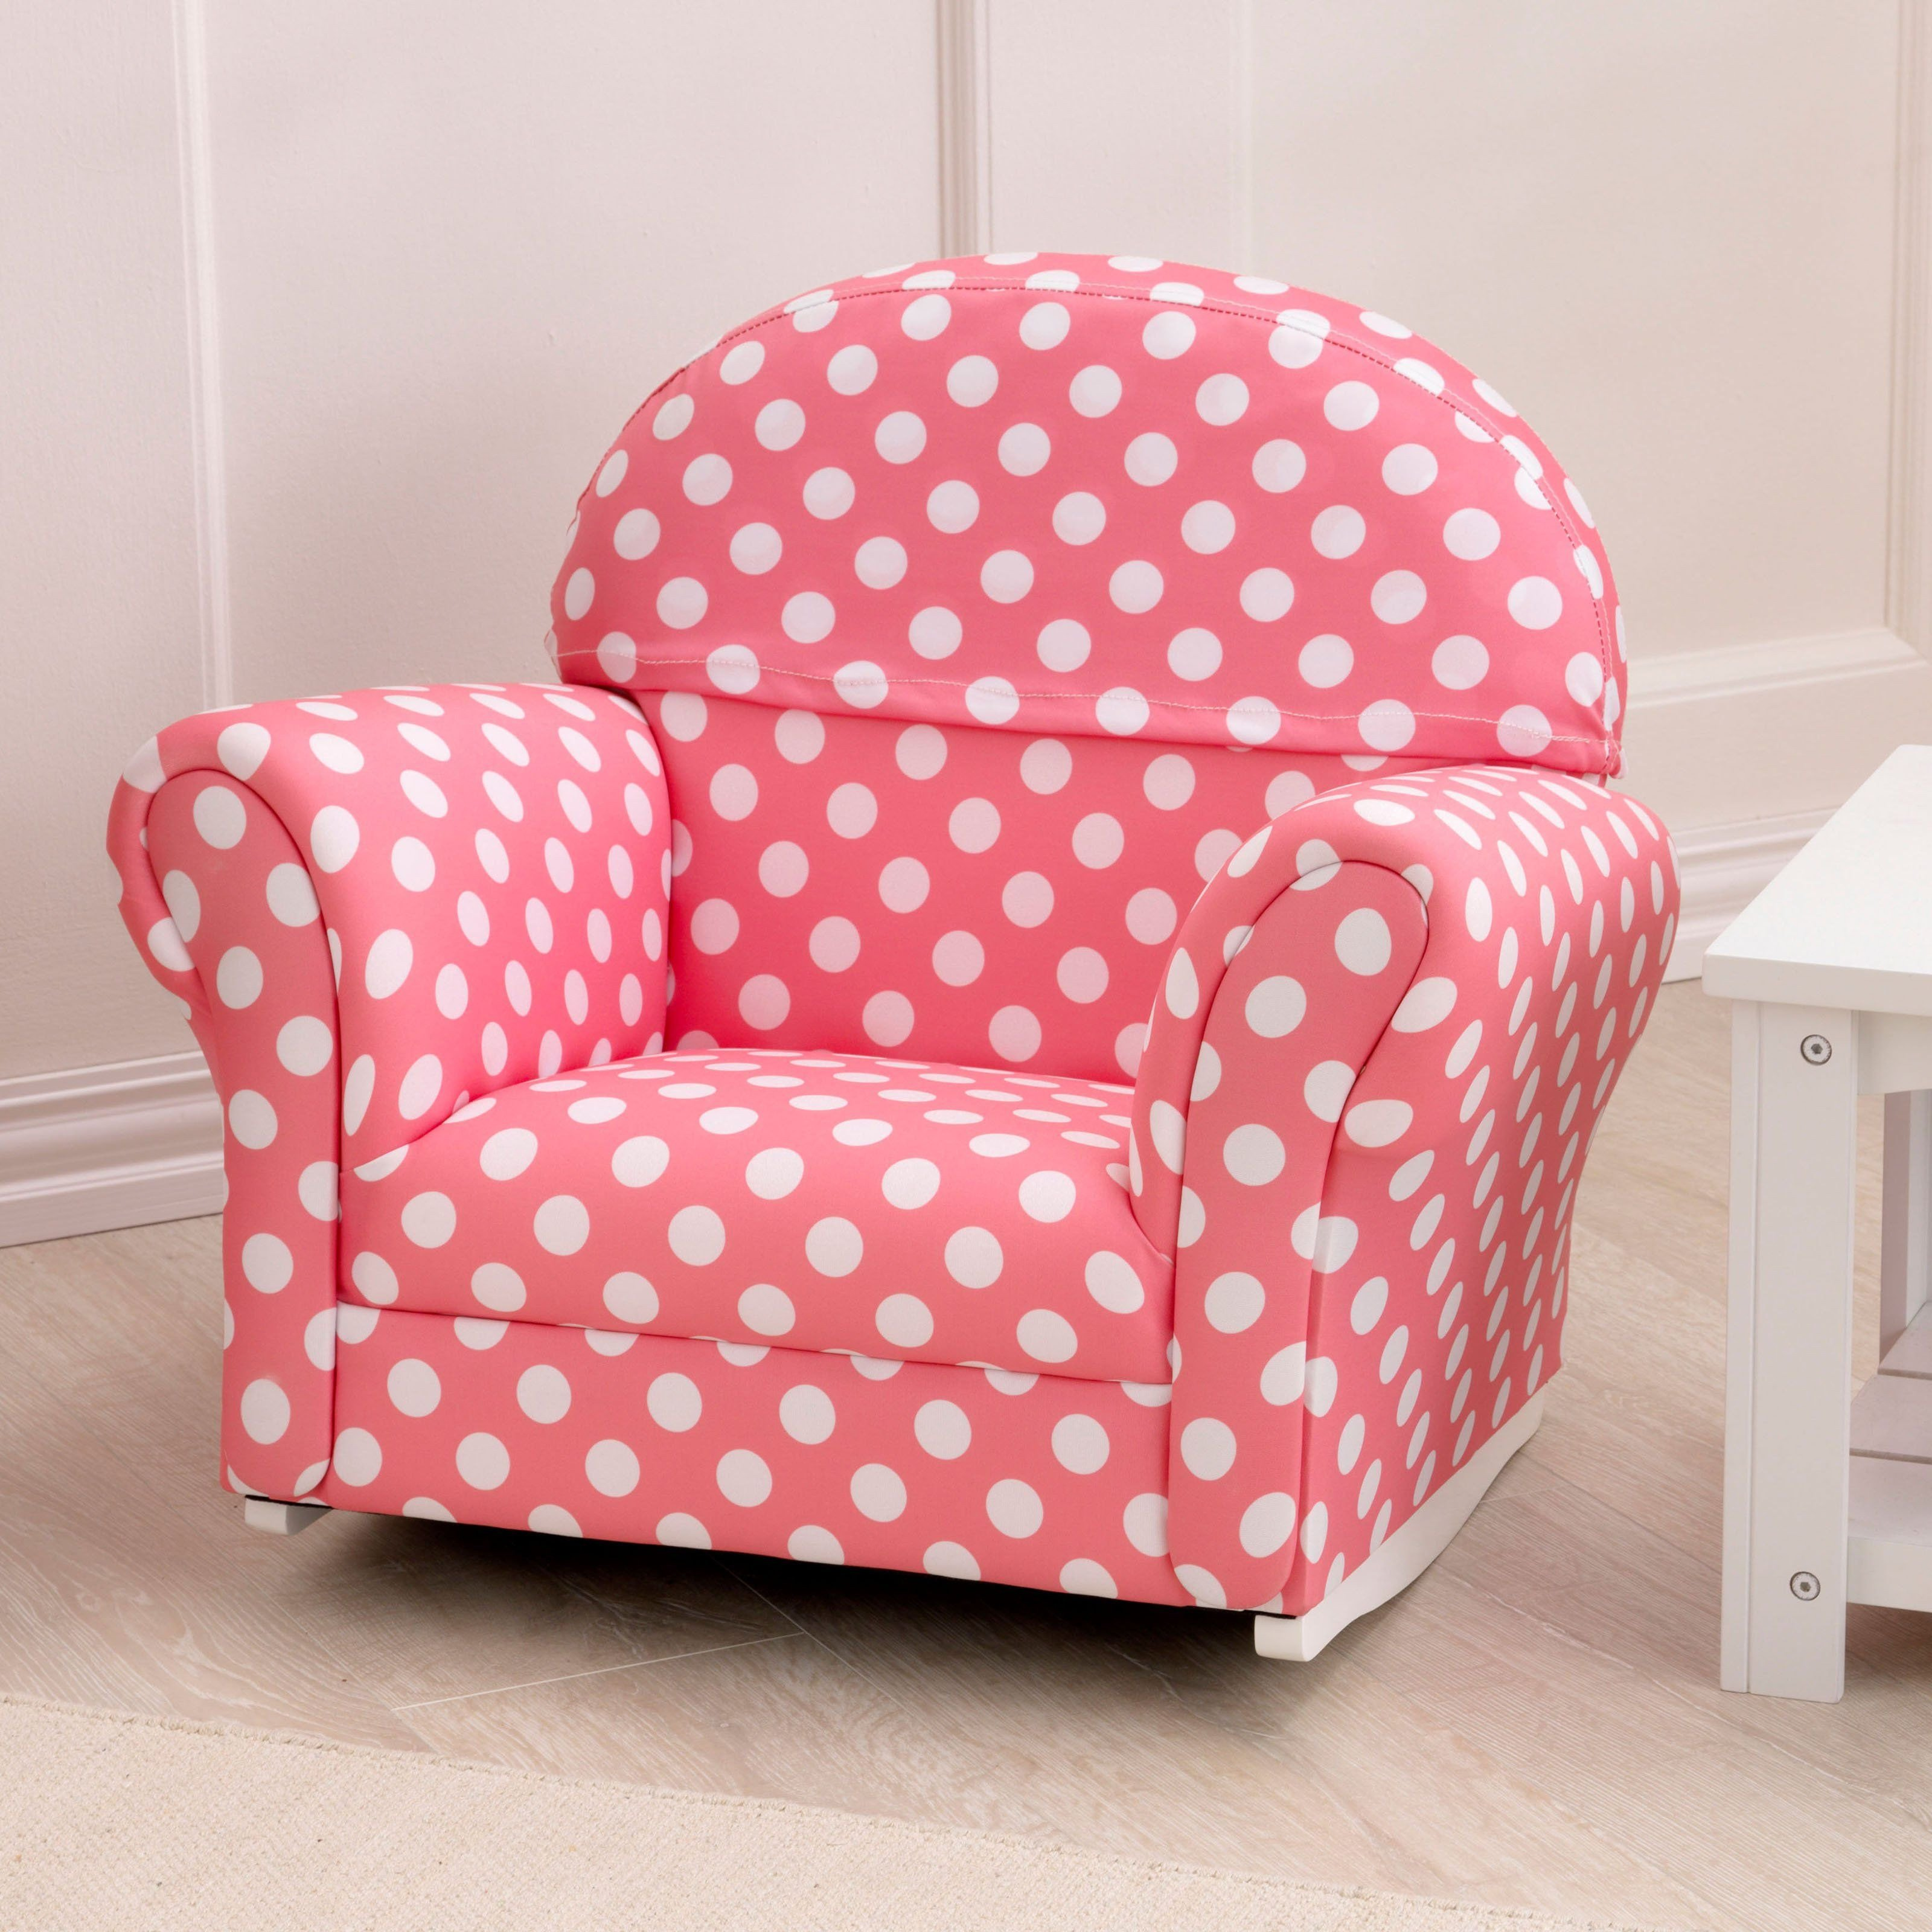 Pink Chair for Bedroom Beautiful Have to Have It Kidkraft Upholstered Pink with Polka Dots